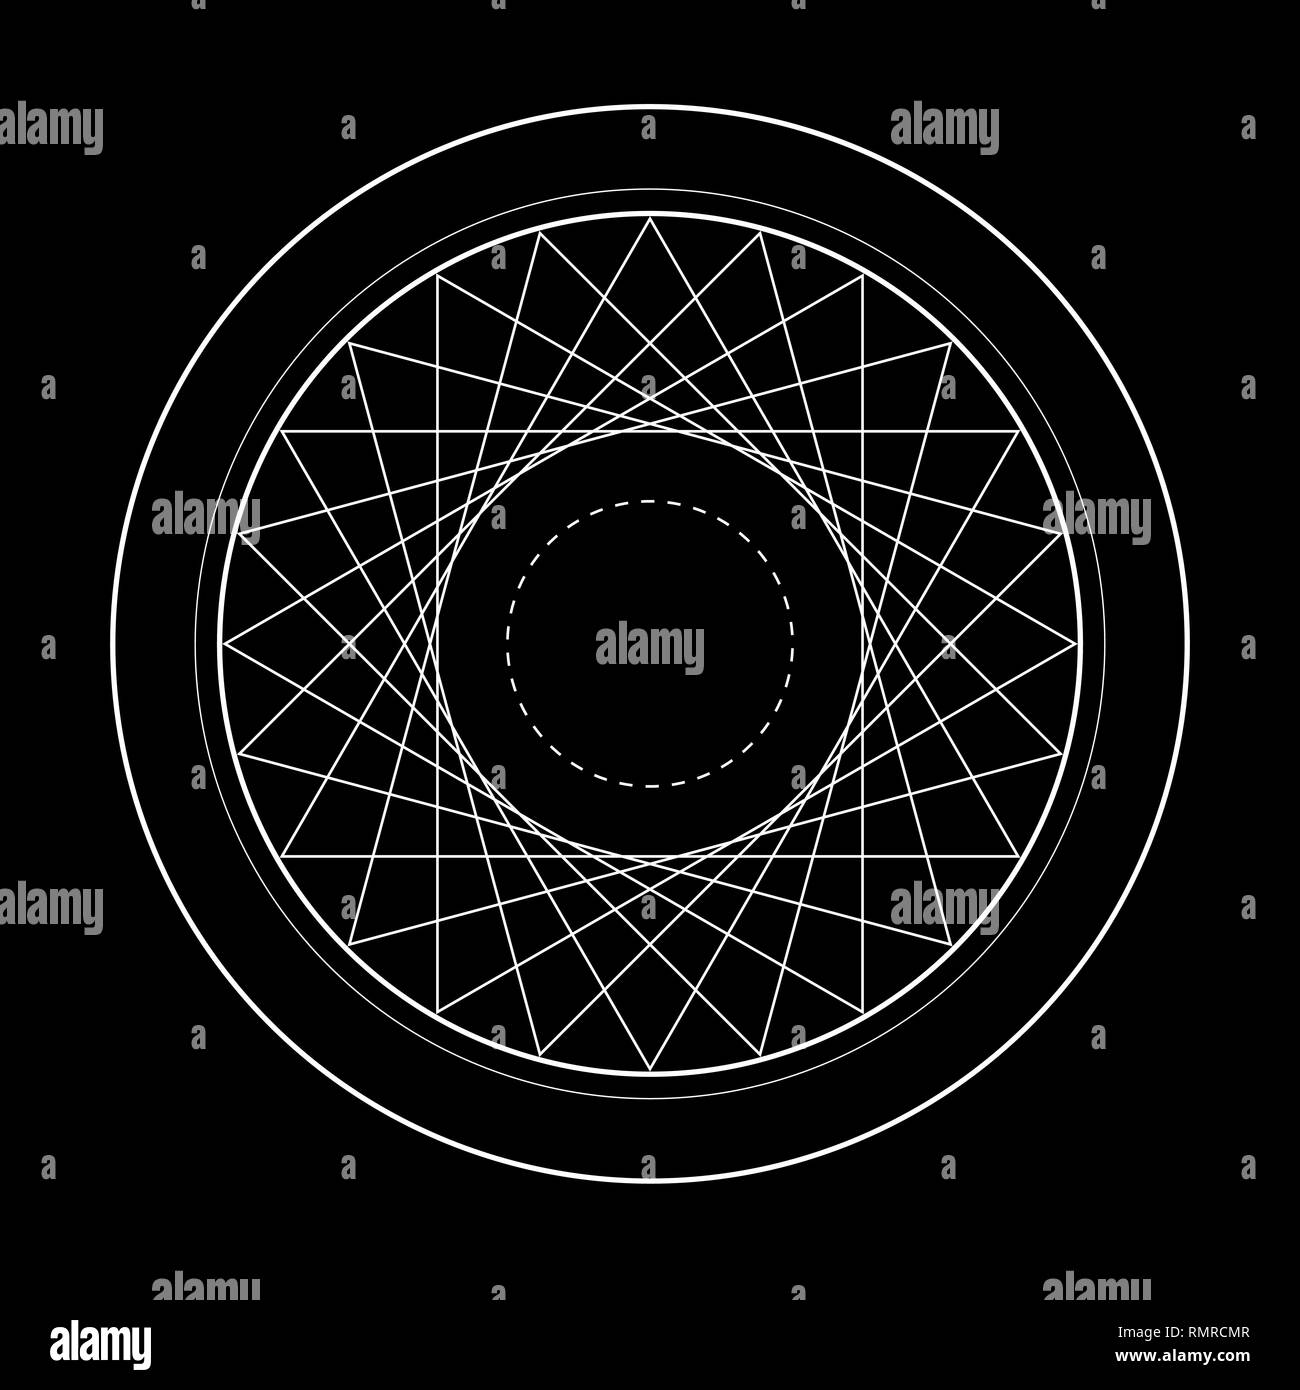 sacred geometry symbol illustration of vector energy star - Stock Image